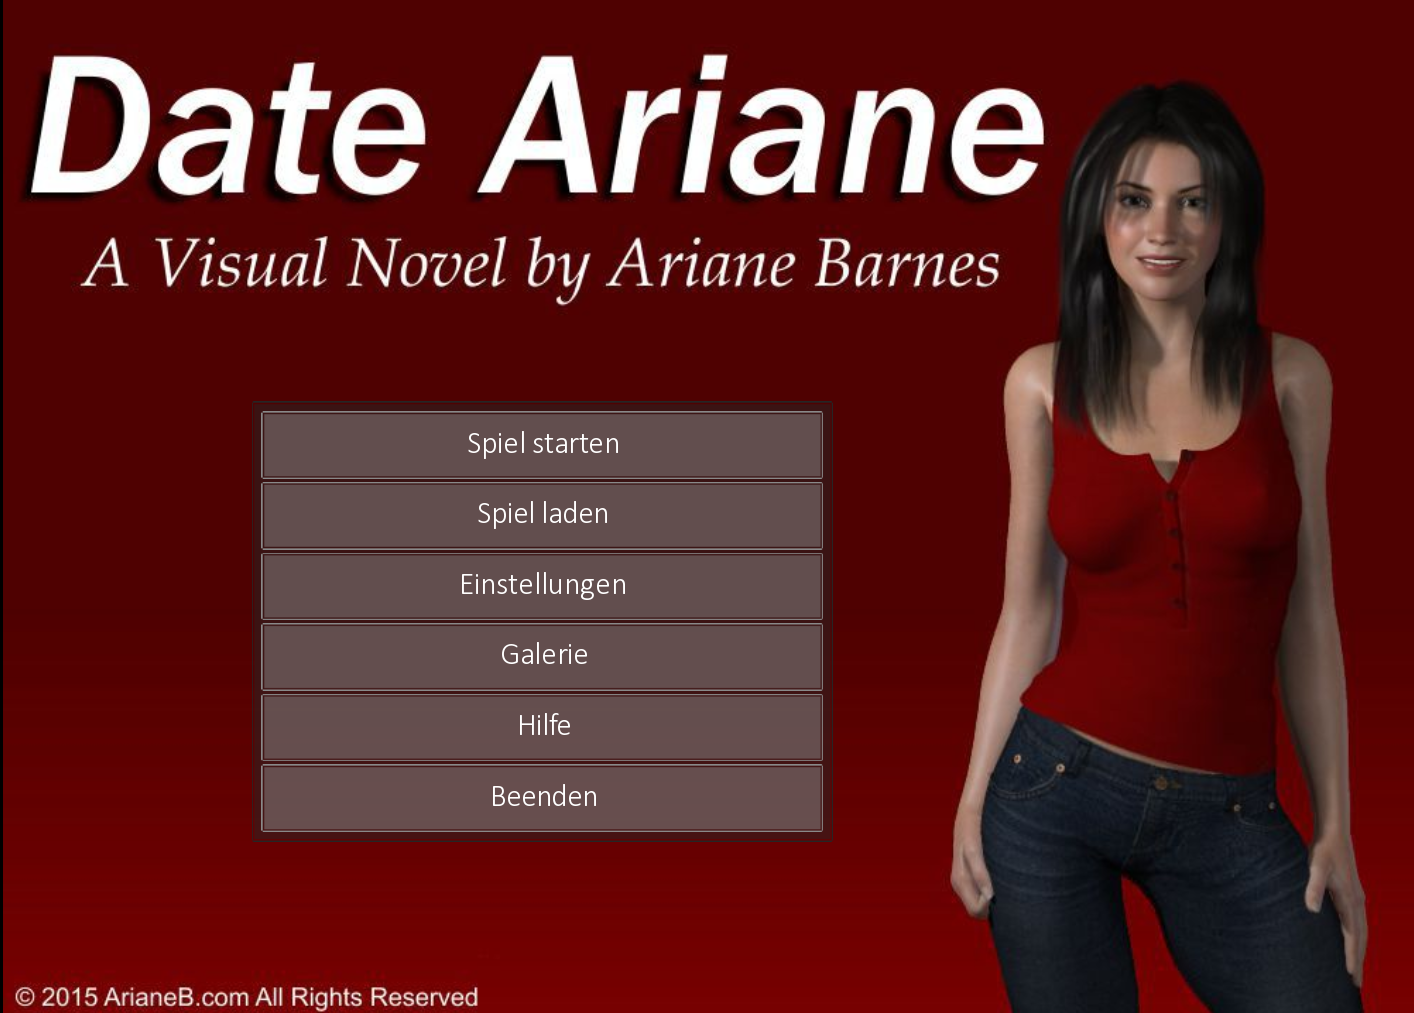 Date ariane sex in Australia